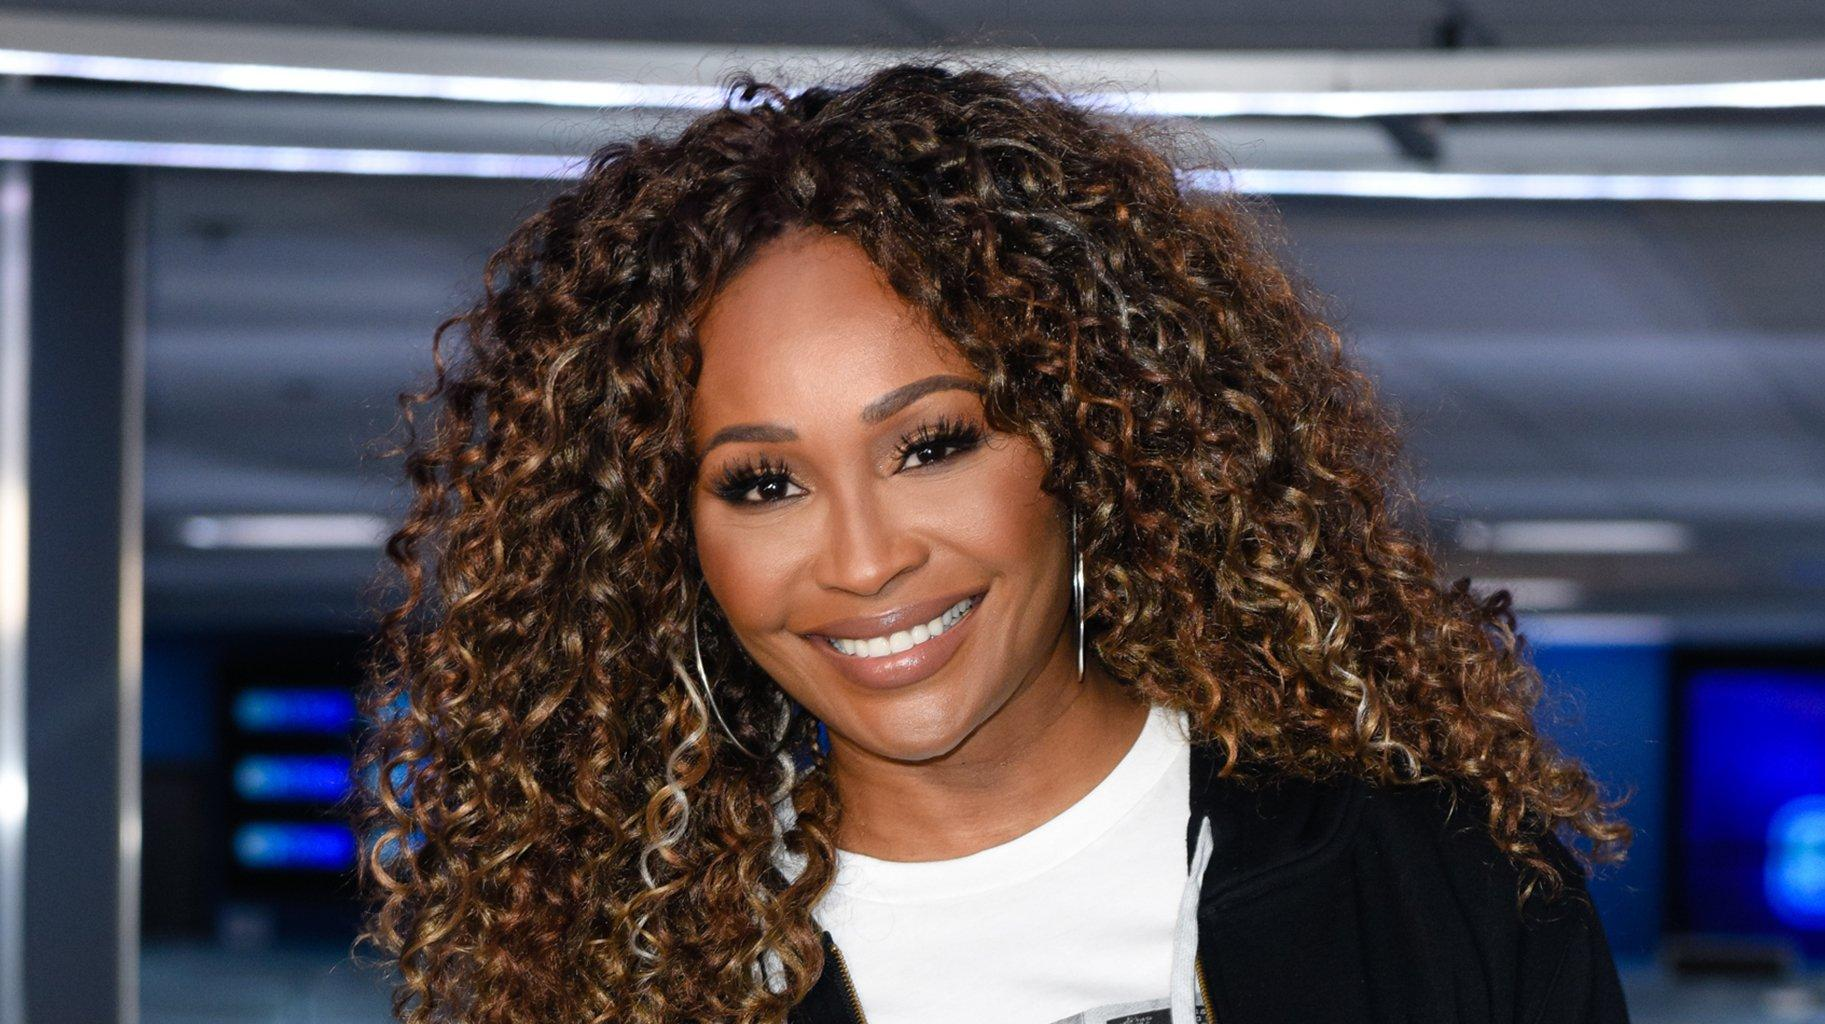 Cynthia Bailey Shows Off Her Beach Body On Her Vacay And Has Fans Praising Her